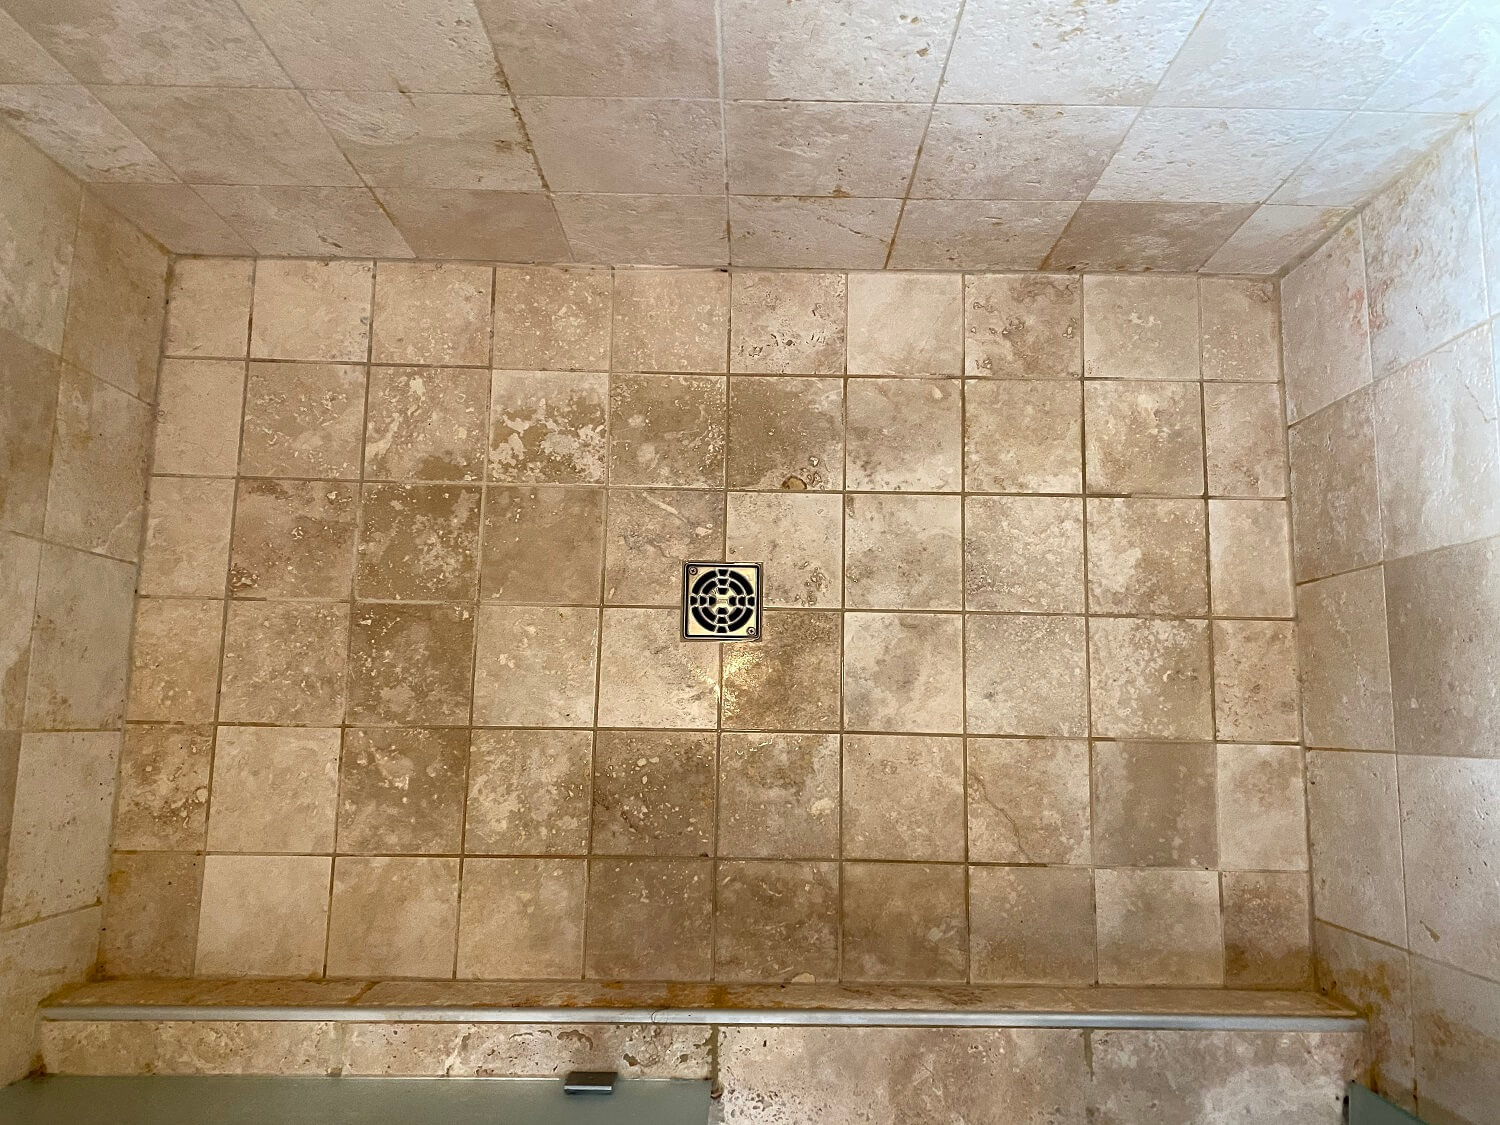 travertine shower floor before deep clean